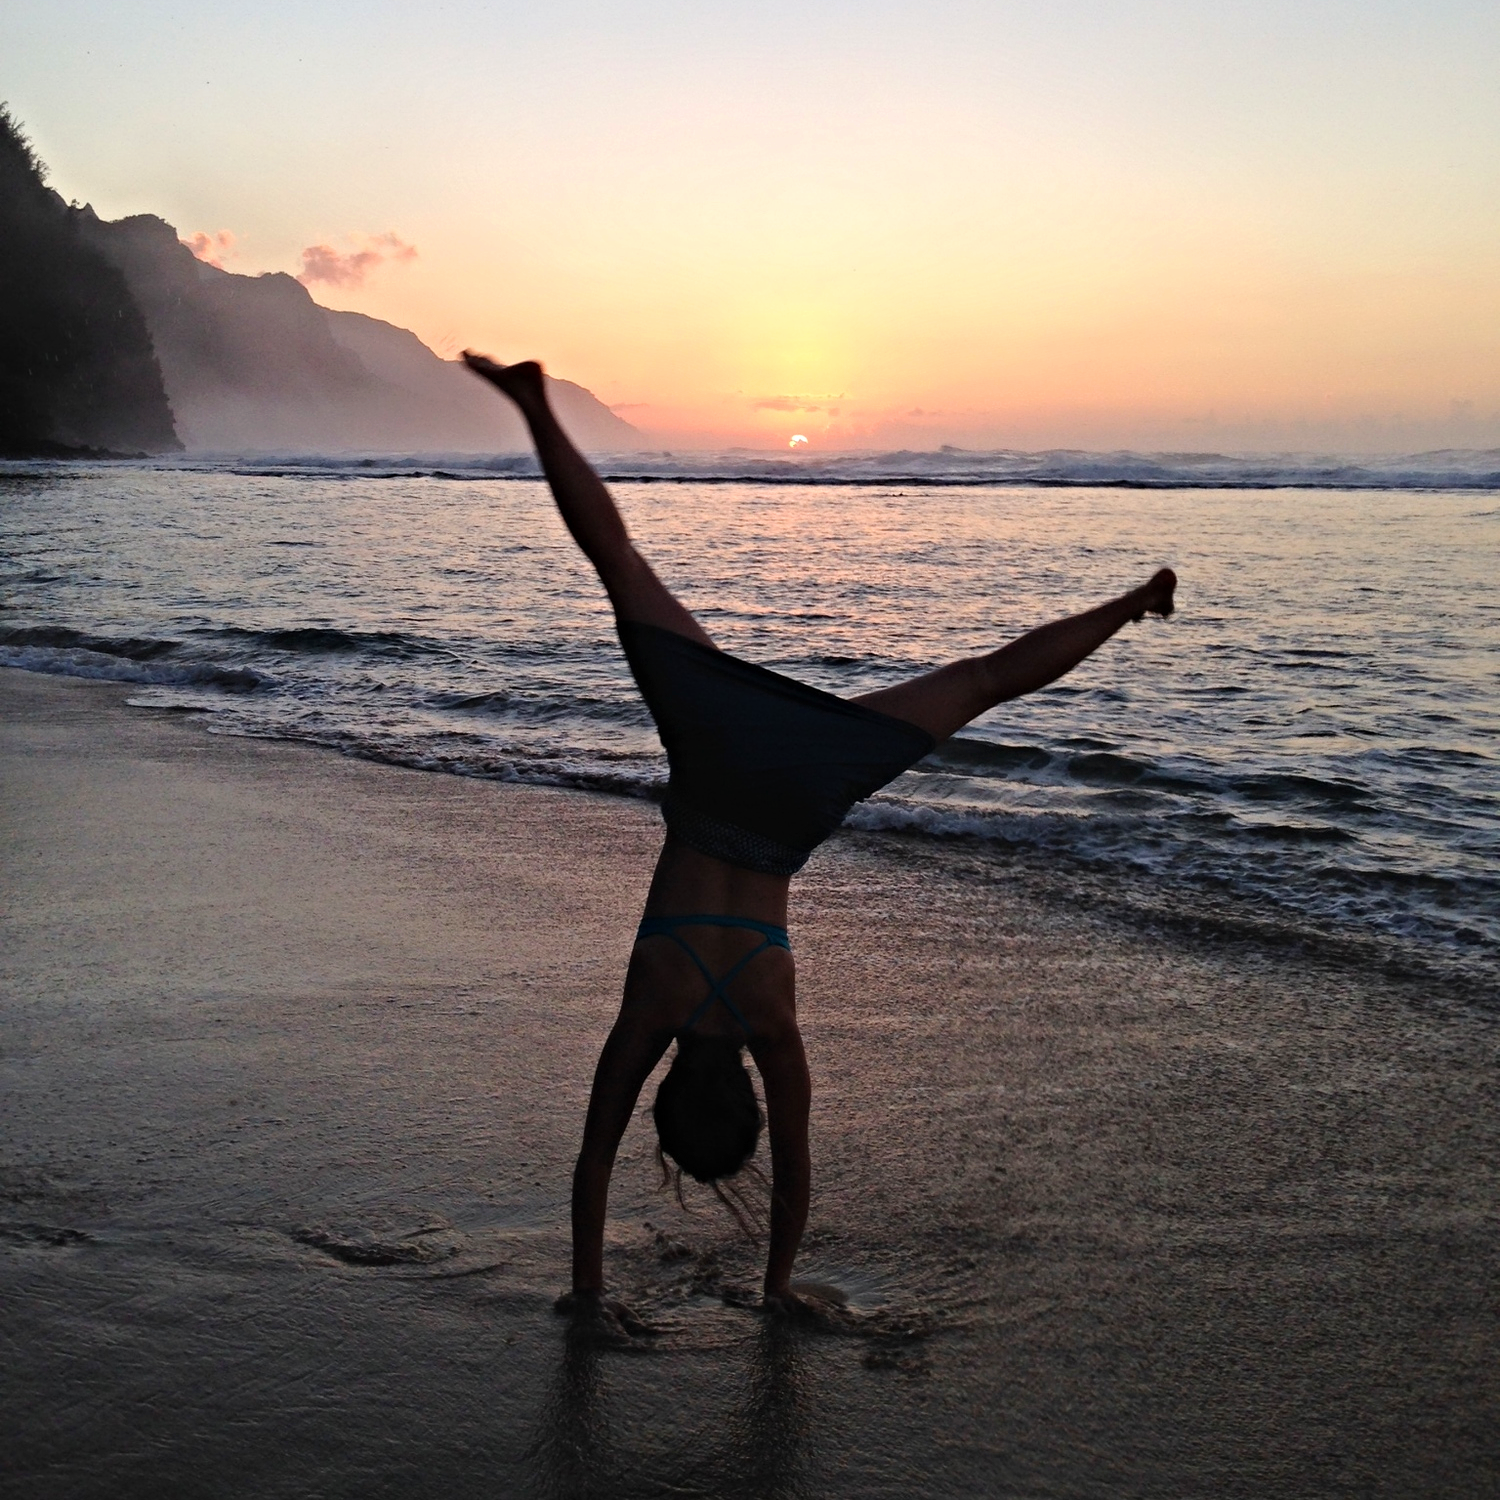 Cartwheel on Kauai beach